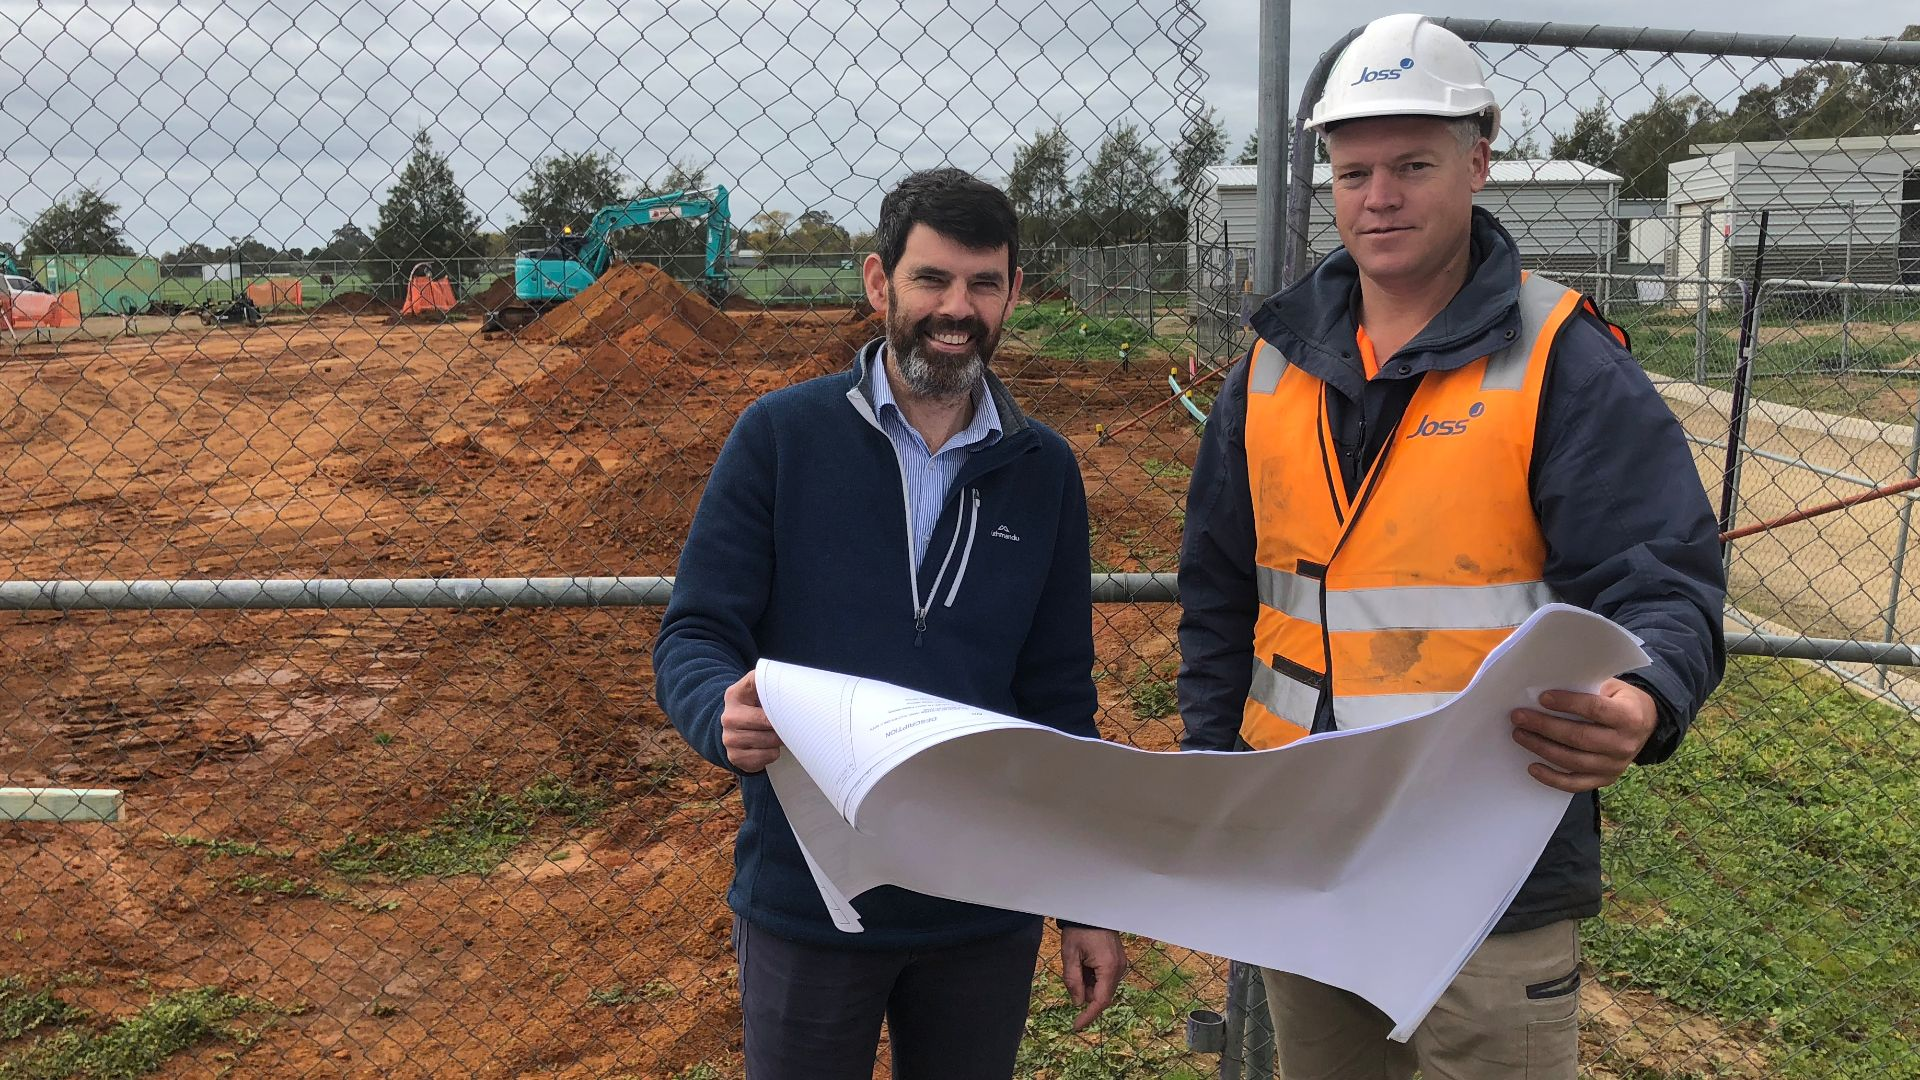 Work begins on Charles Sturt's Equine Isolation Facility in Wagga Wagga